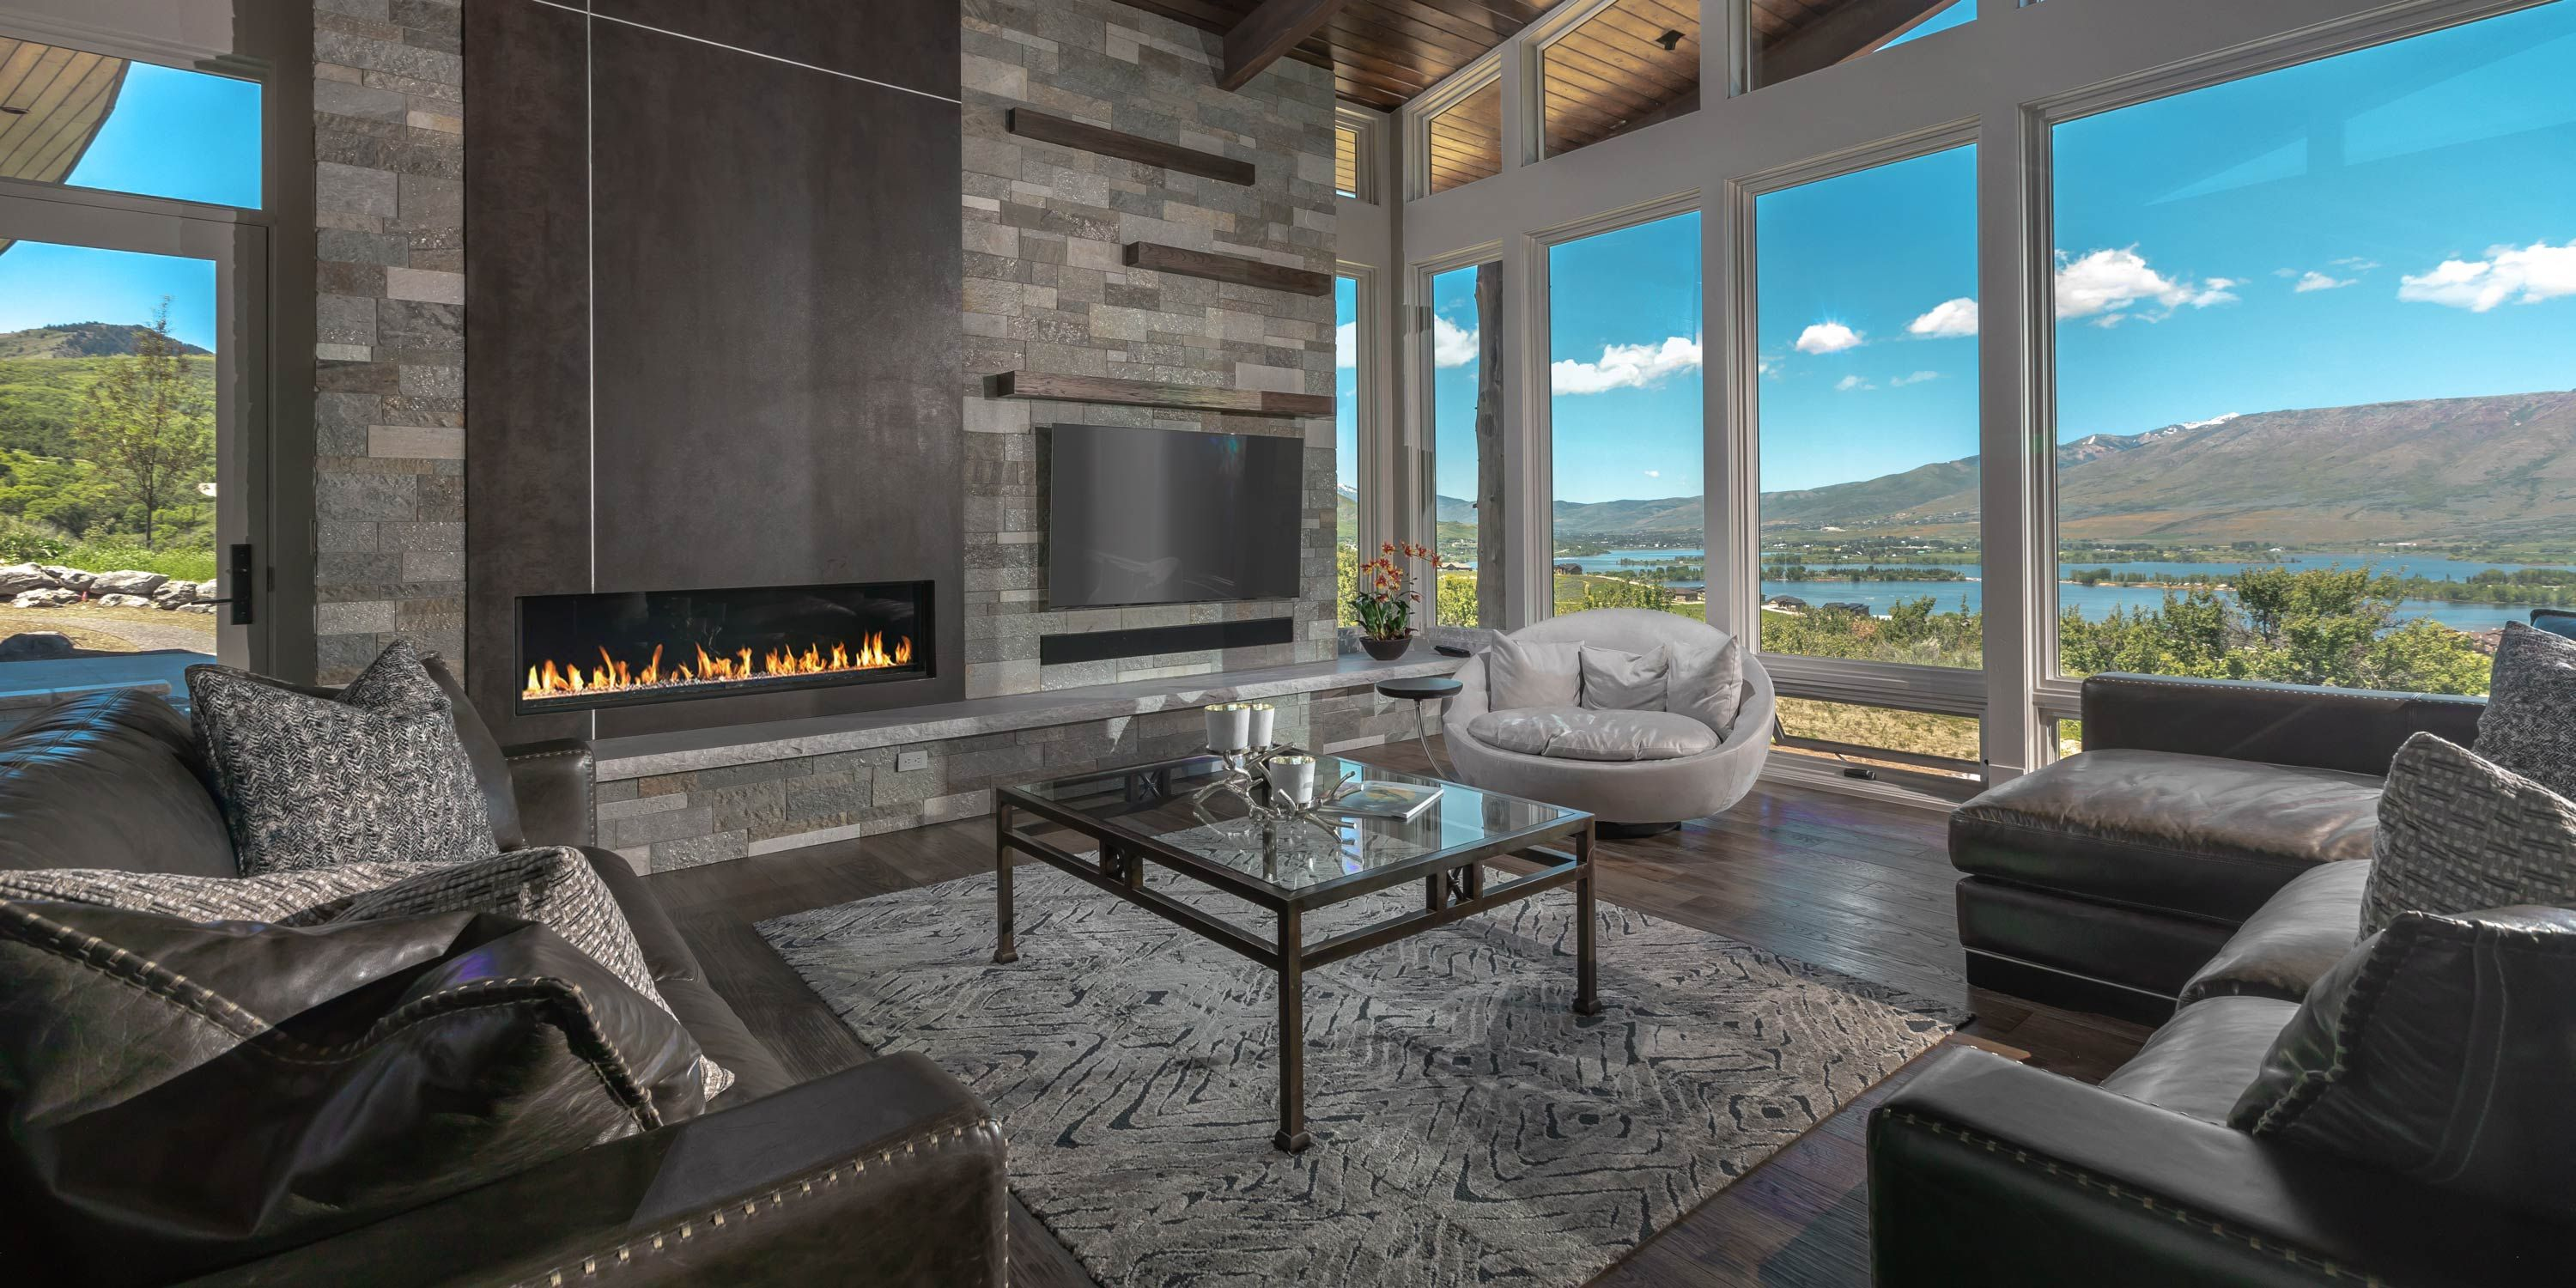 Lighting Control Systems Park City, UT, Indoor living, Home Automation, Smart Home Technology, Utah, Argenta, Living Room